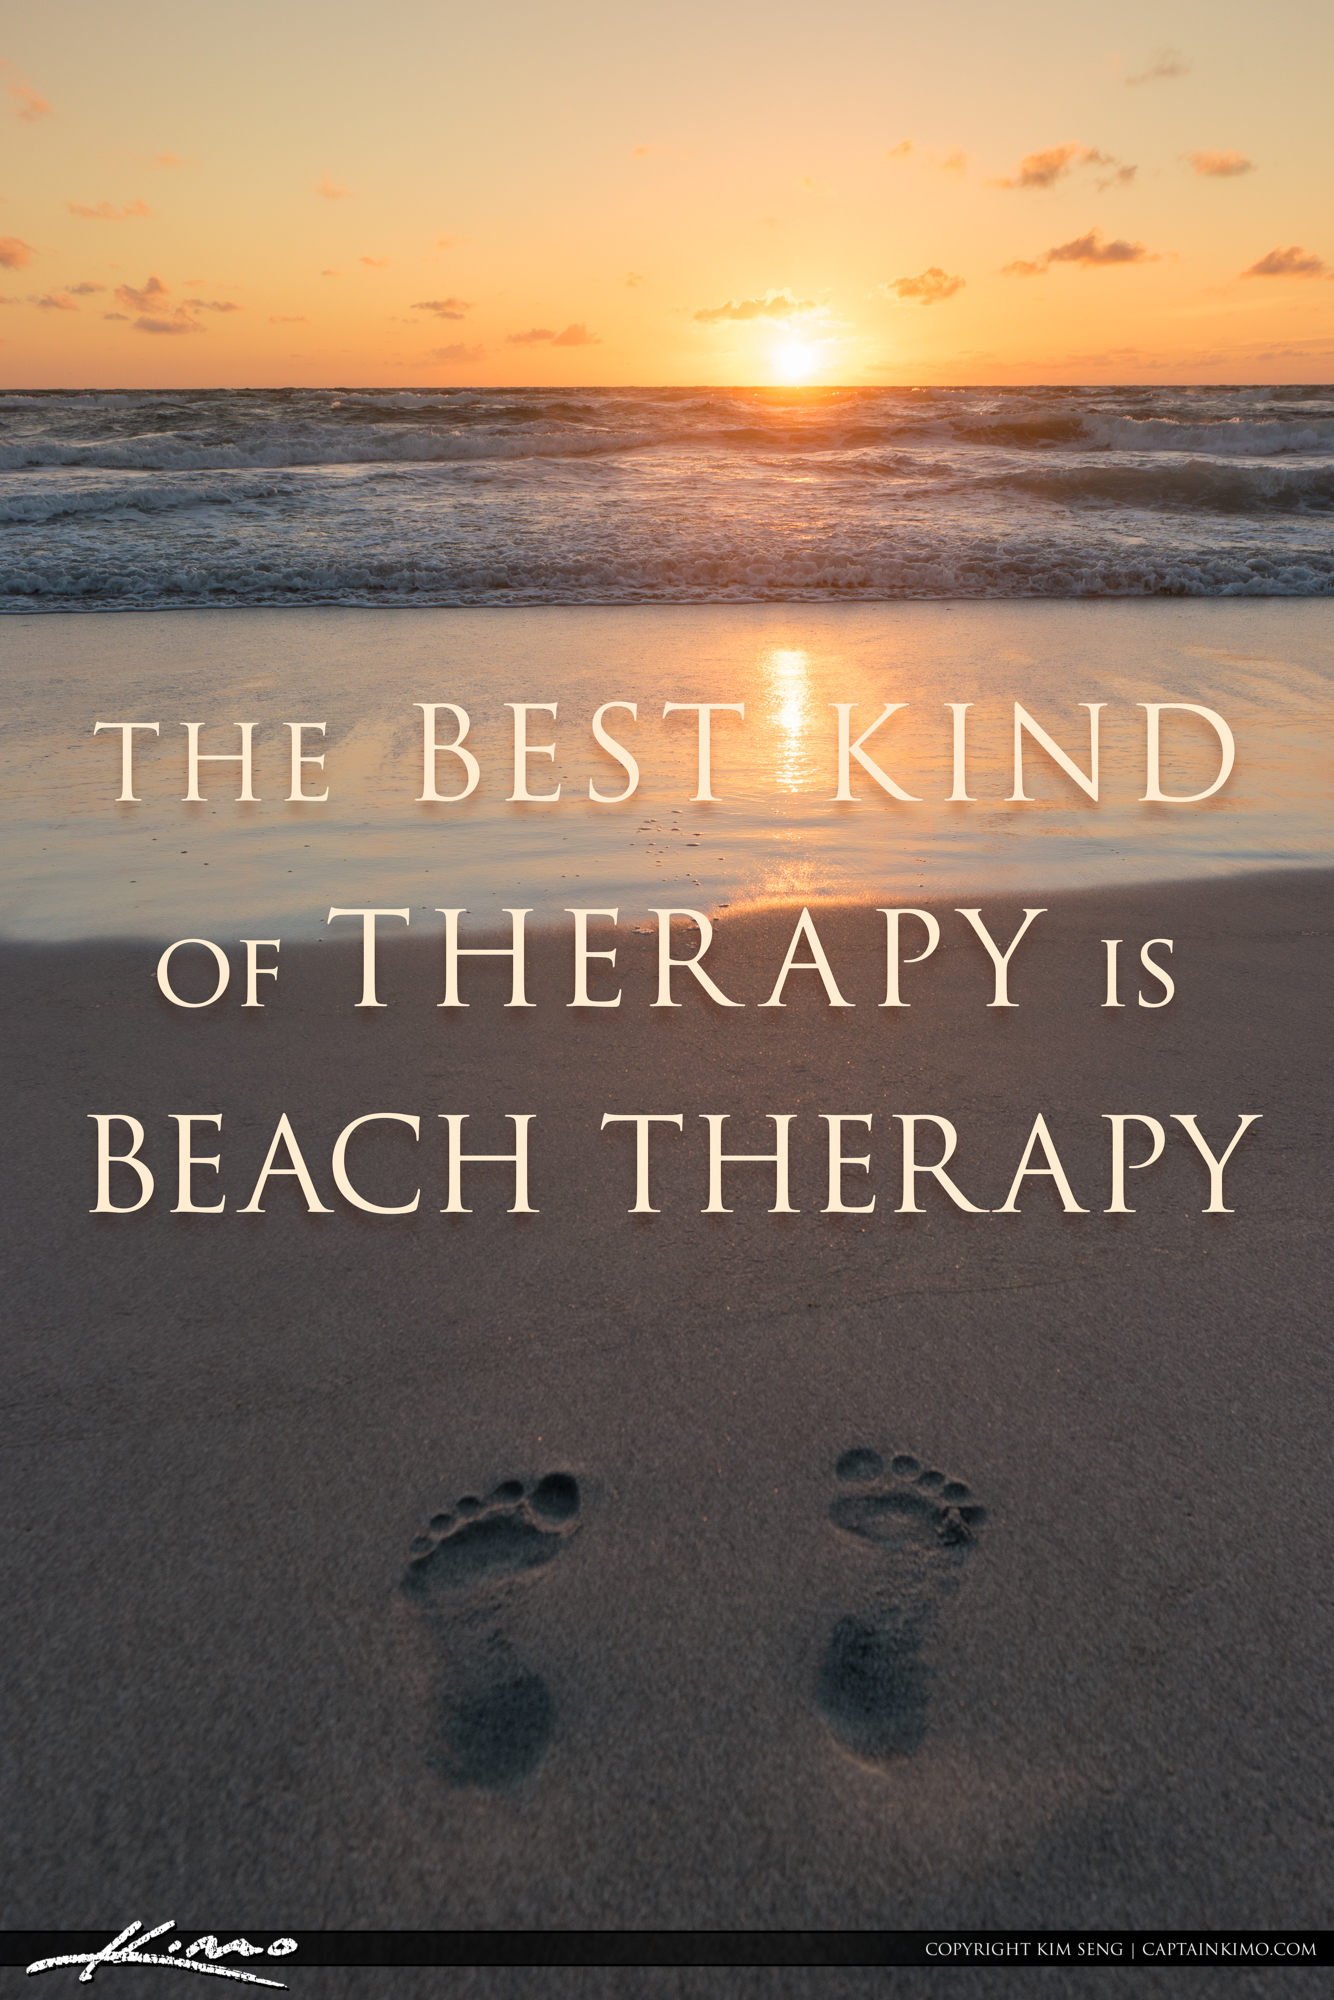 The Best Kind of Therapy is Beach Therapy